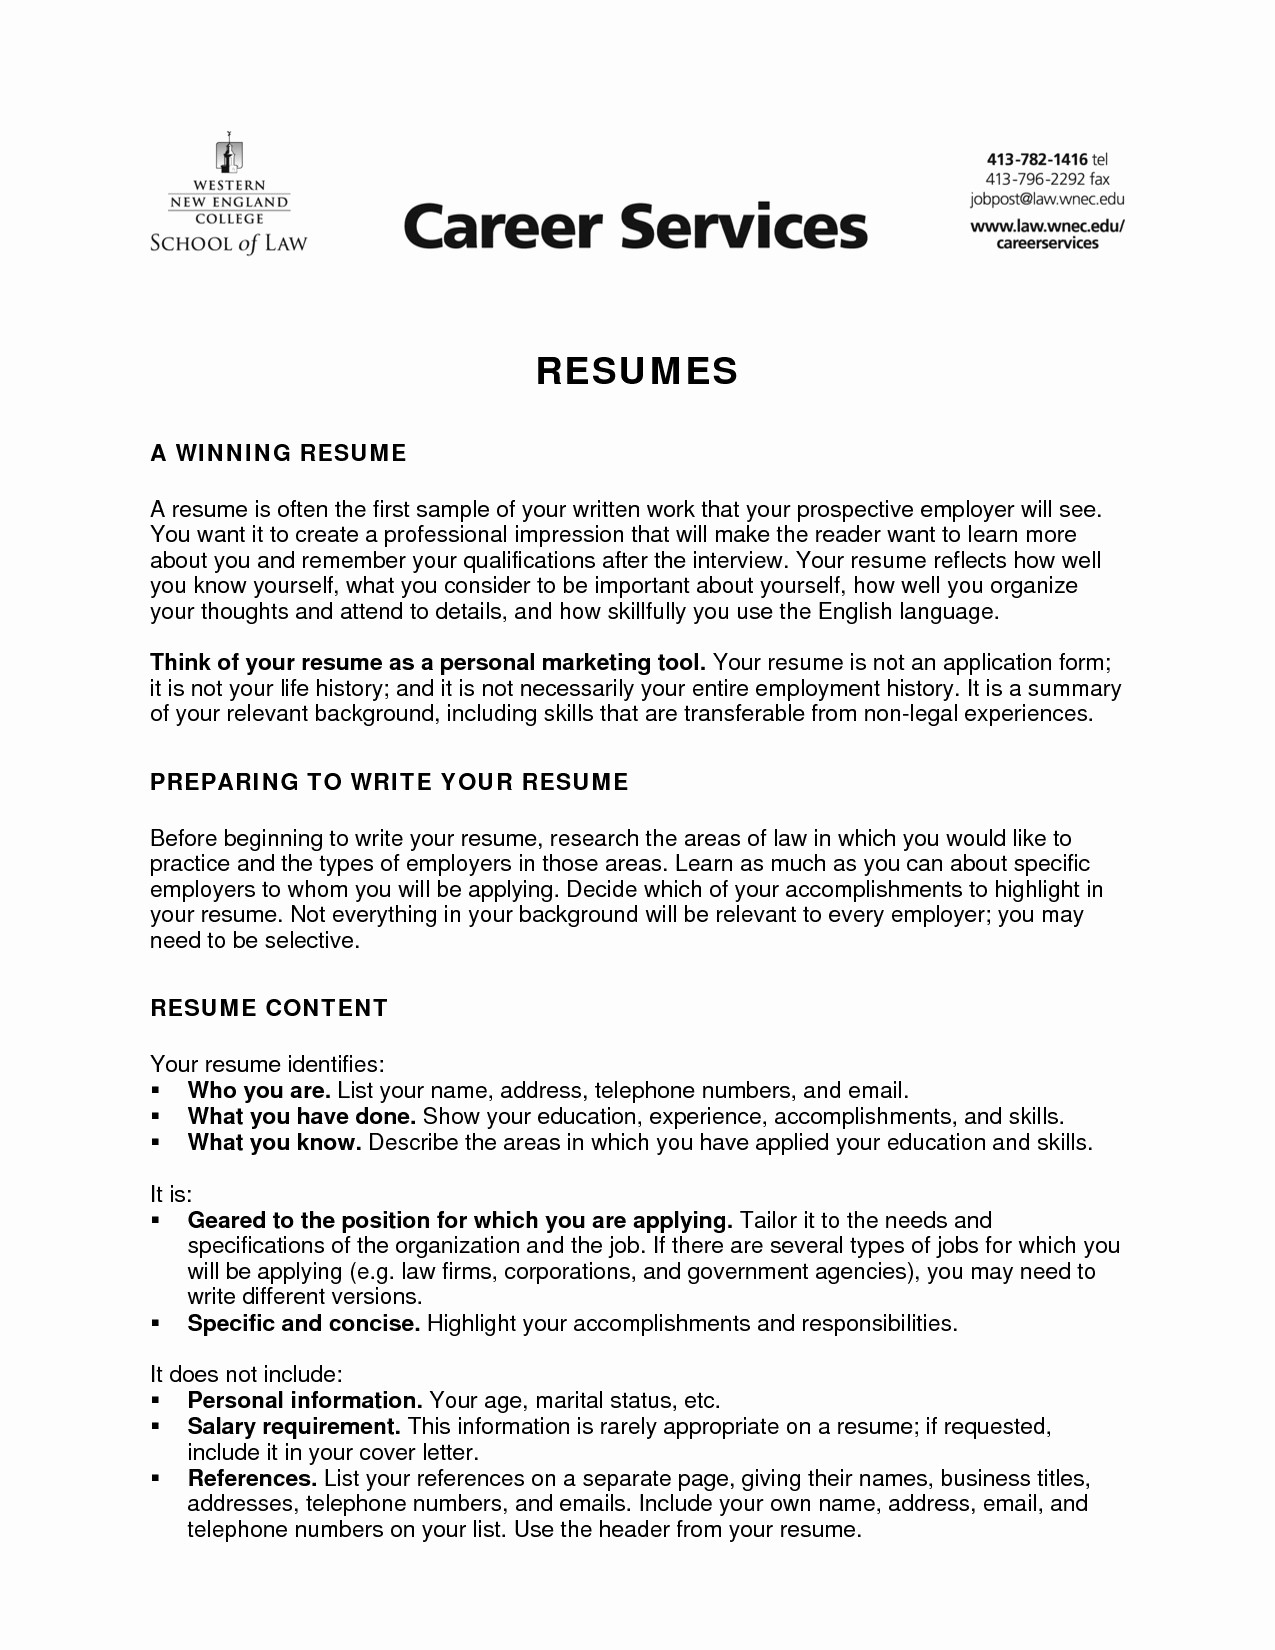 Insurance Marketing Letter Template - How to Address Salary Requirements In Cover Letter